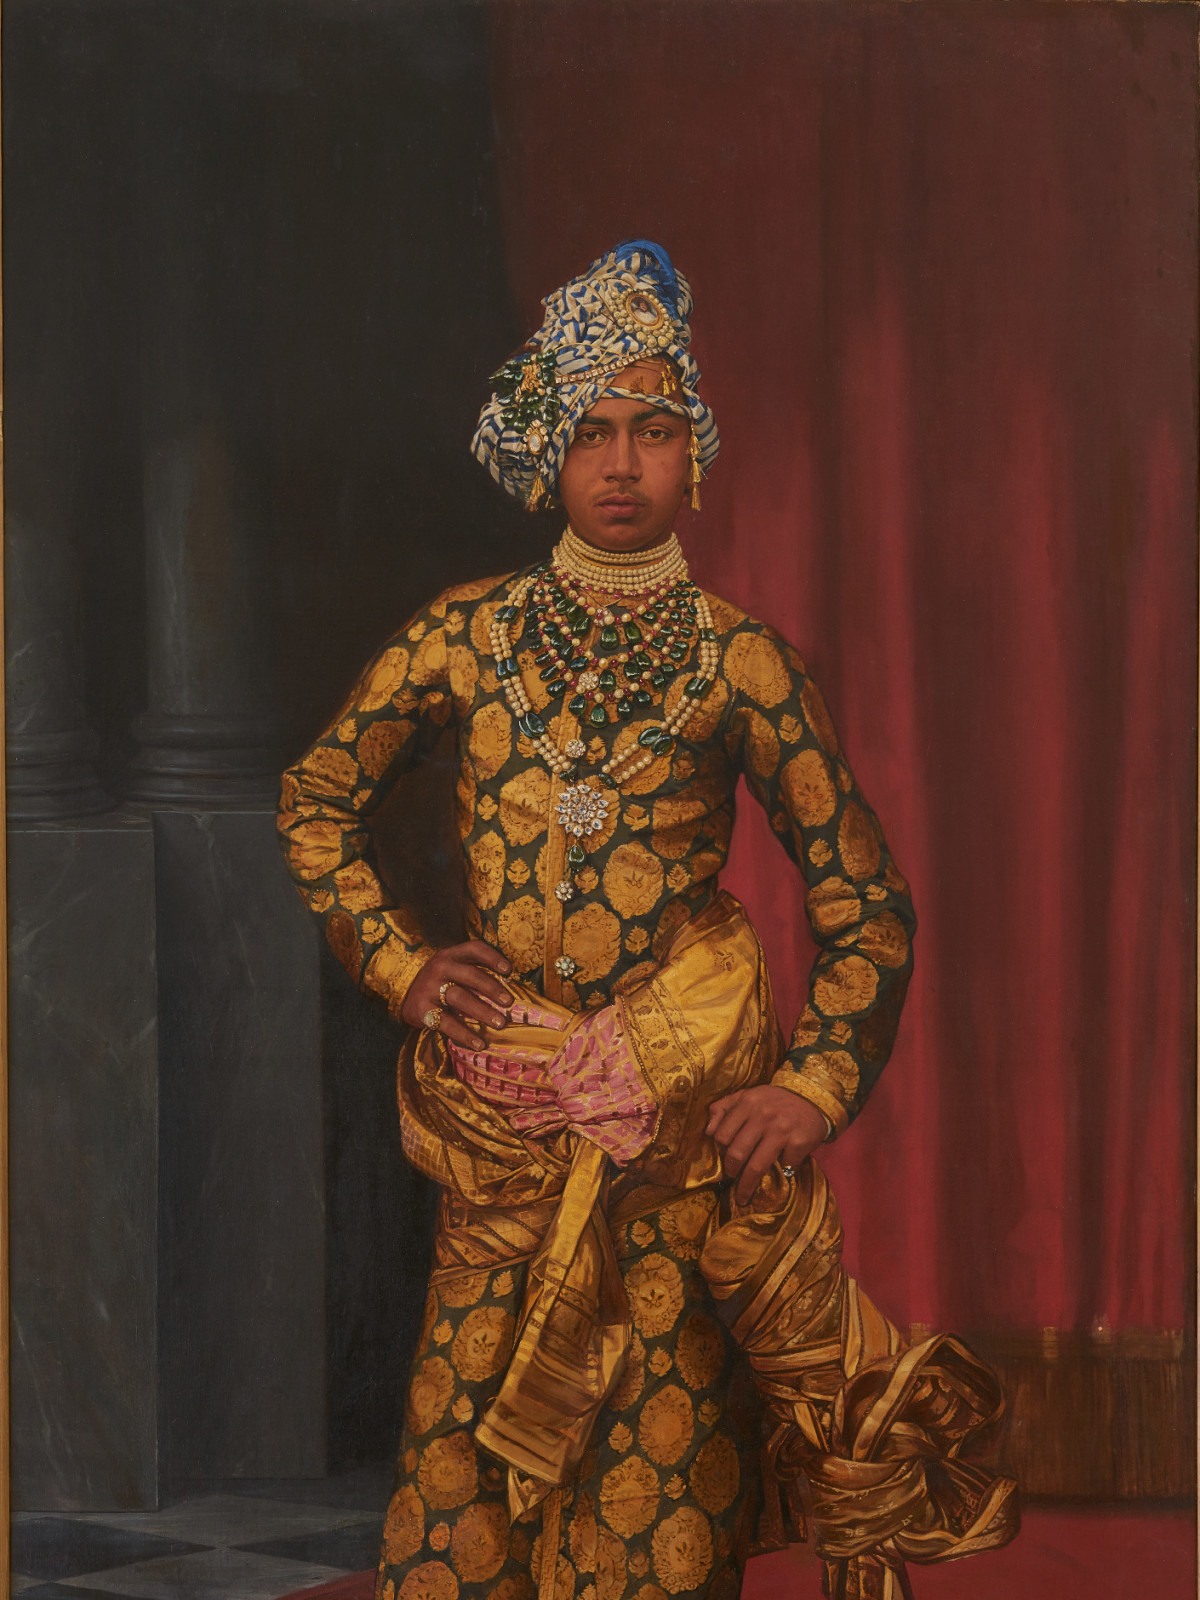 MFAH: Peacock in the Desert, Portrait of Maharaja Sardar Singh